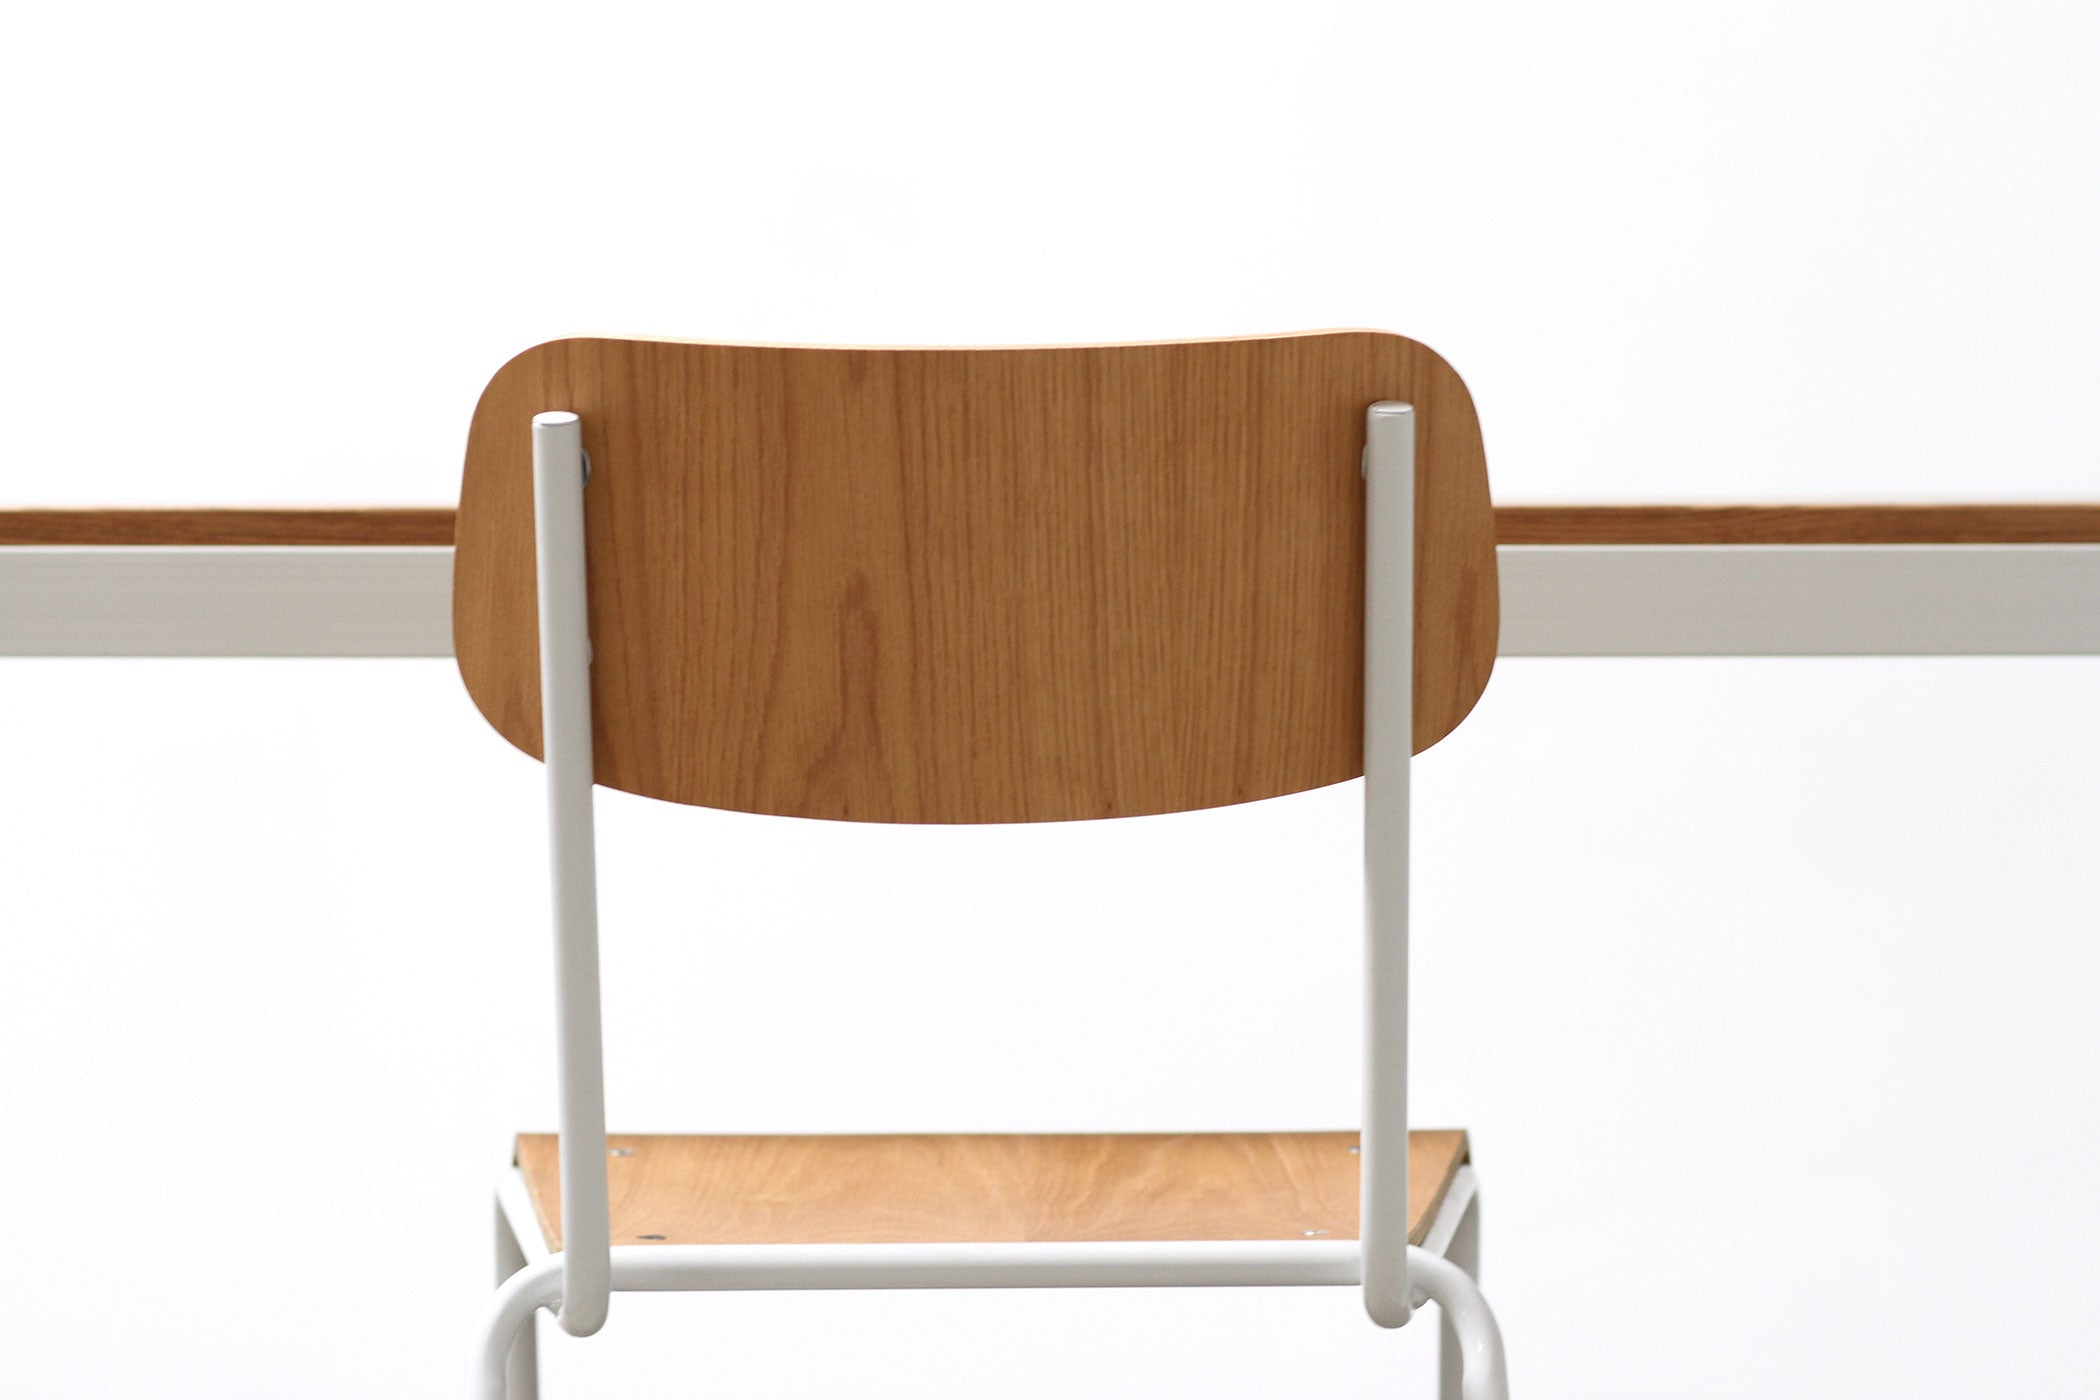 RAD Furniture's Solid Wood-top Dining Table and School Chair